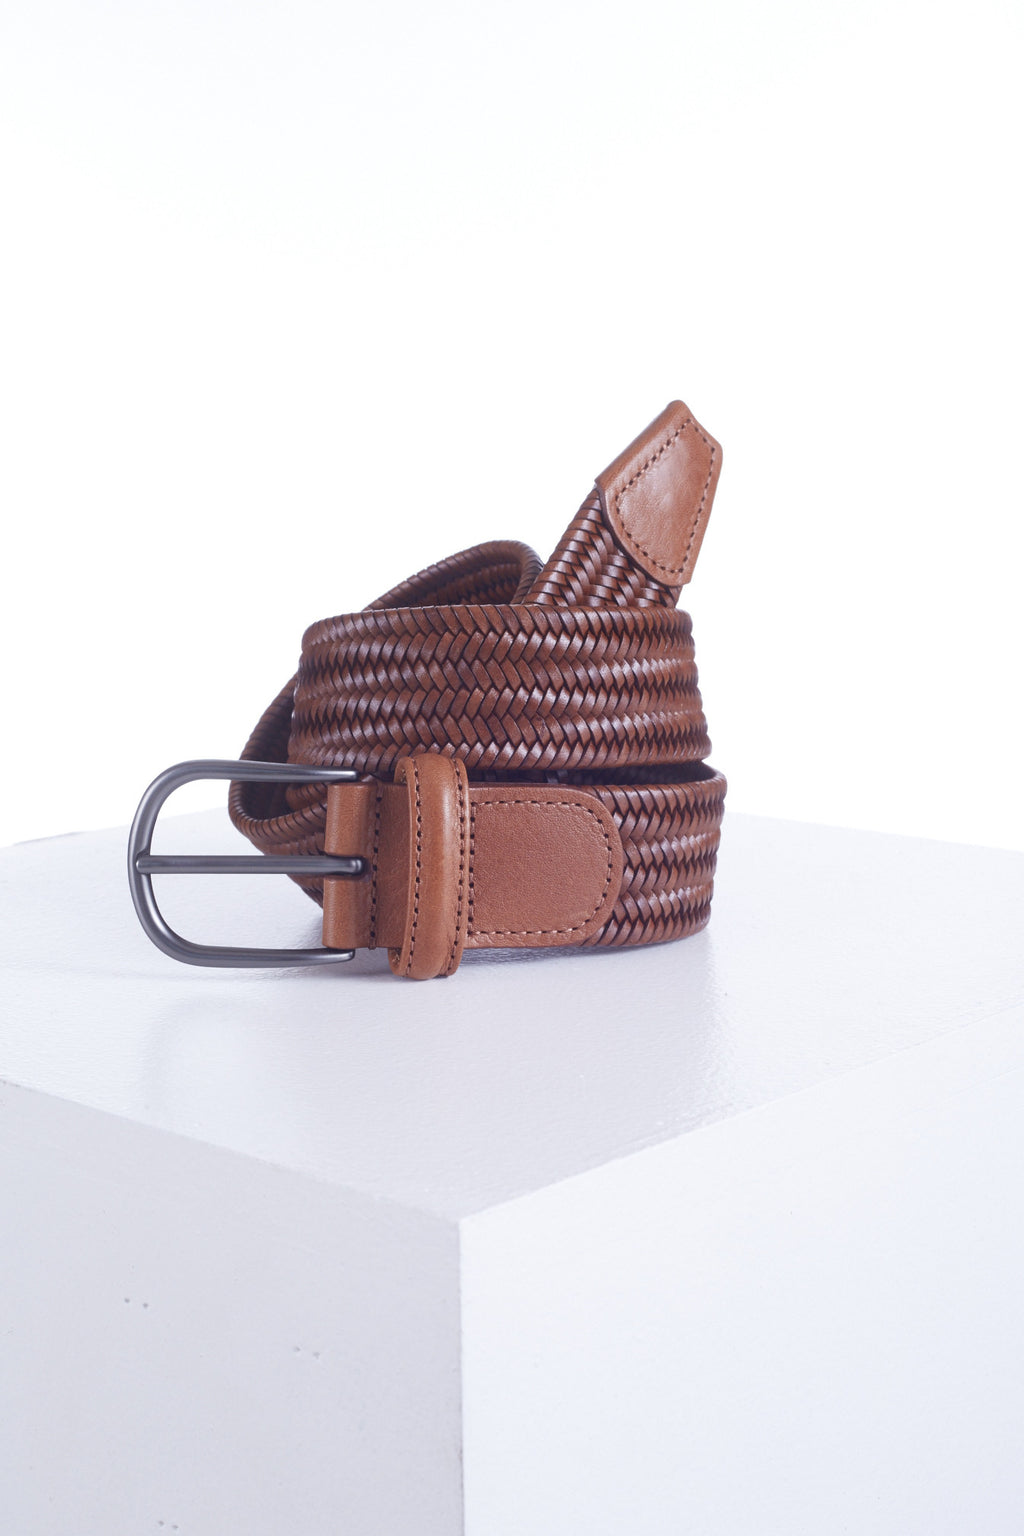 Anderson's Light Brown Leather Woven Belt